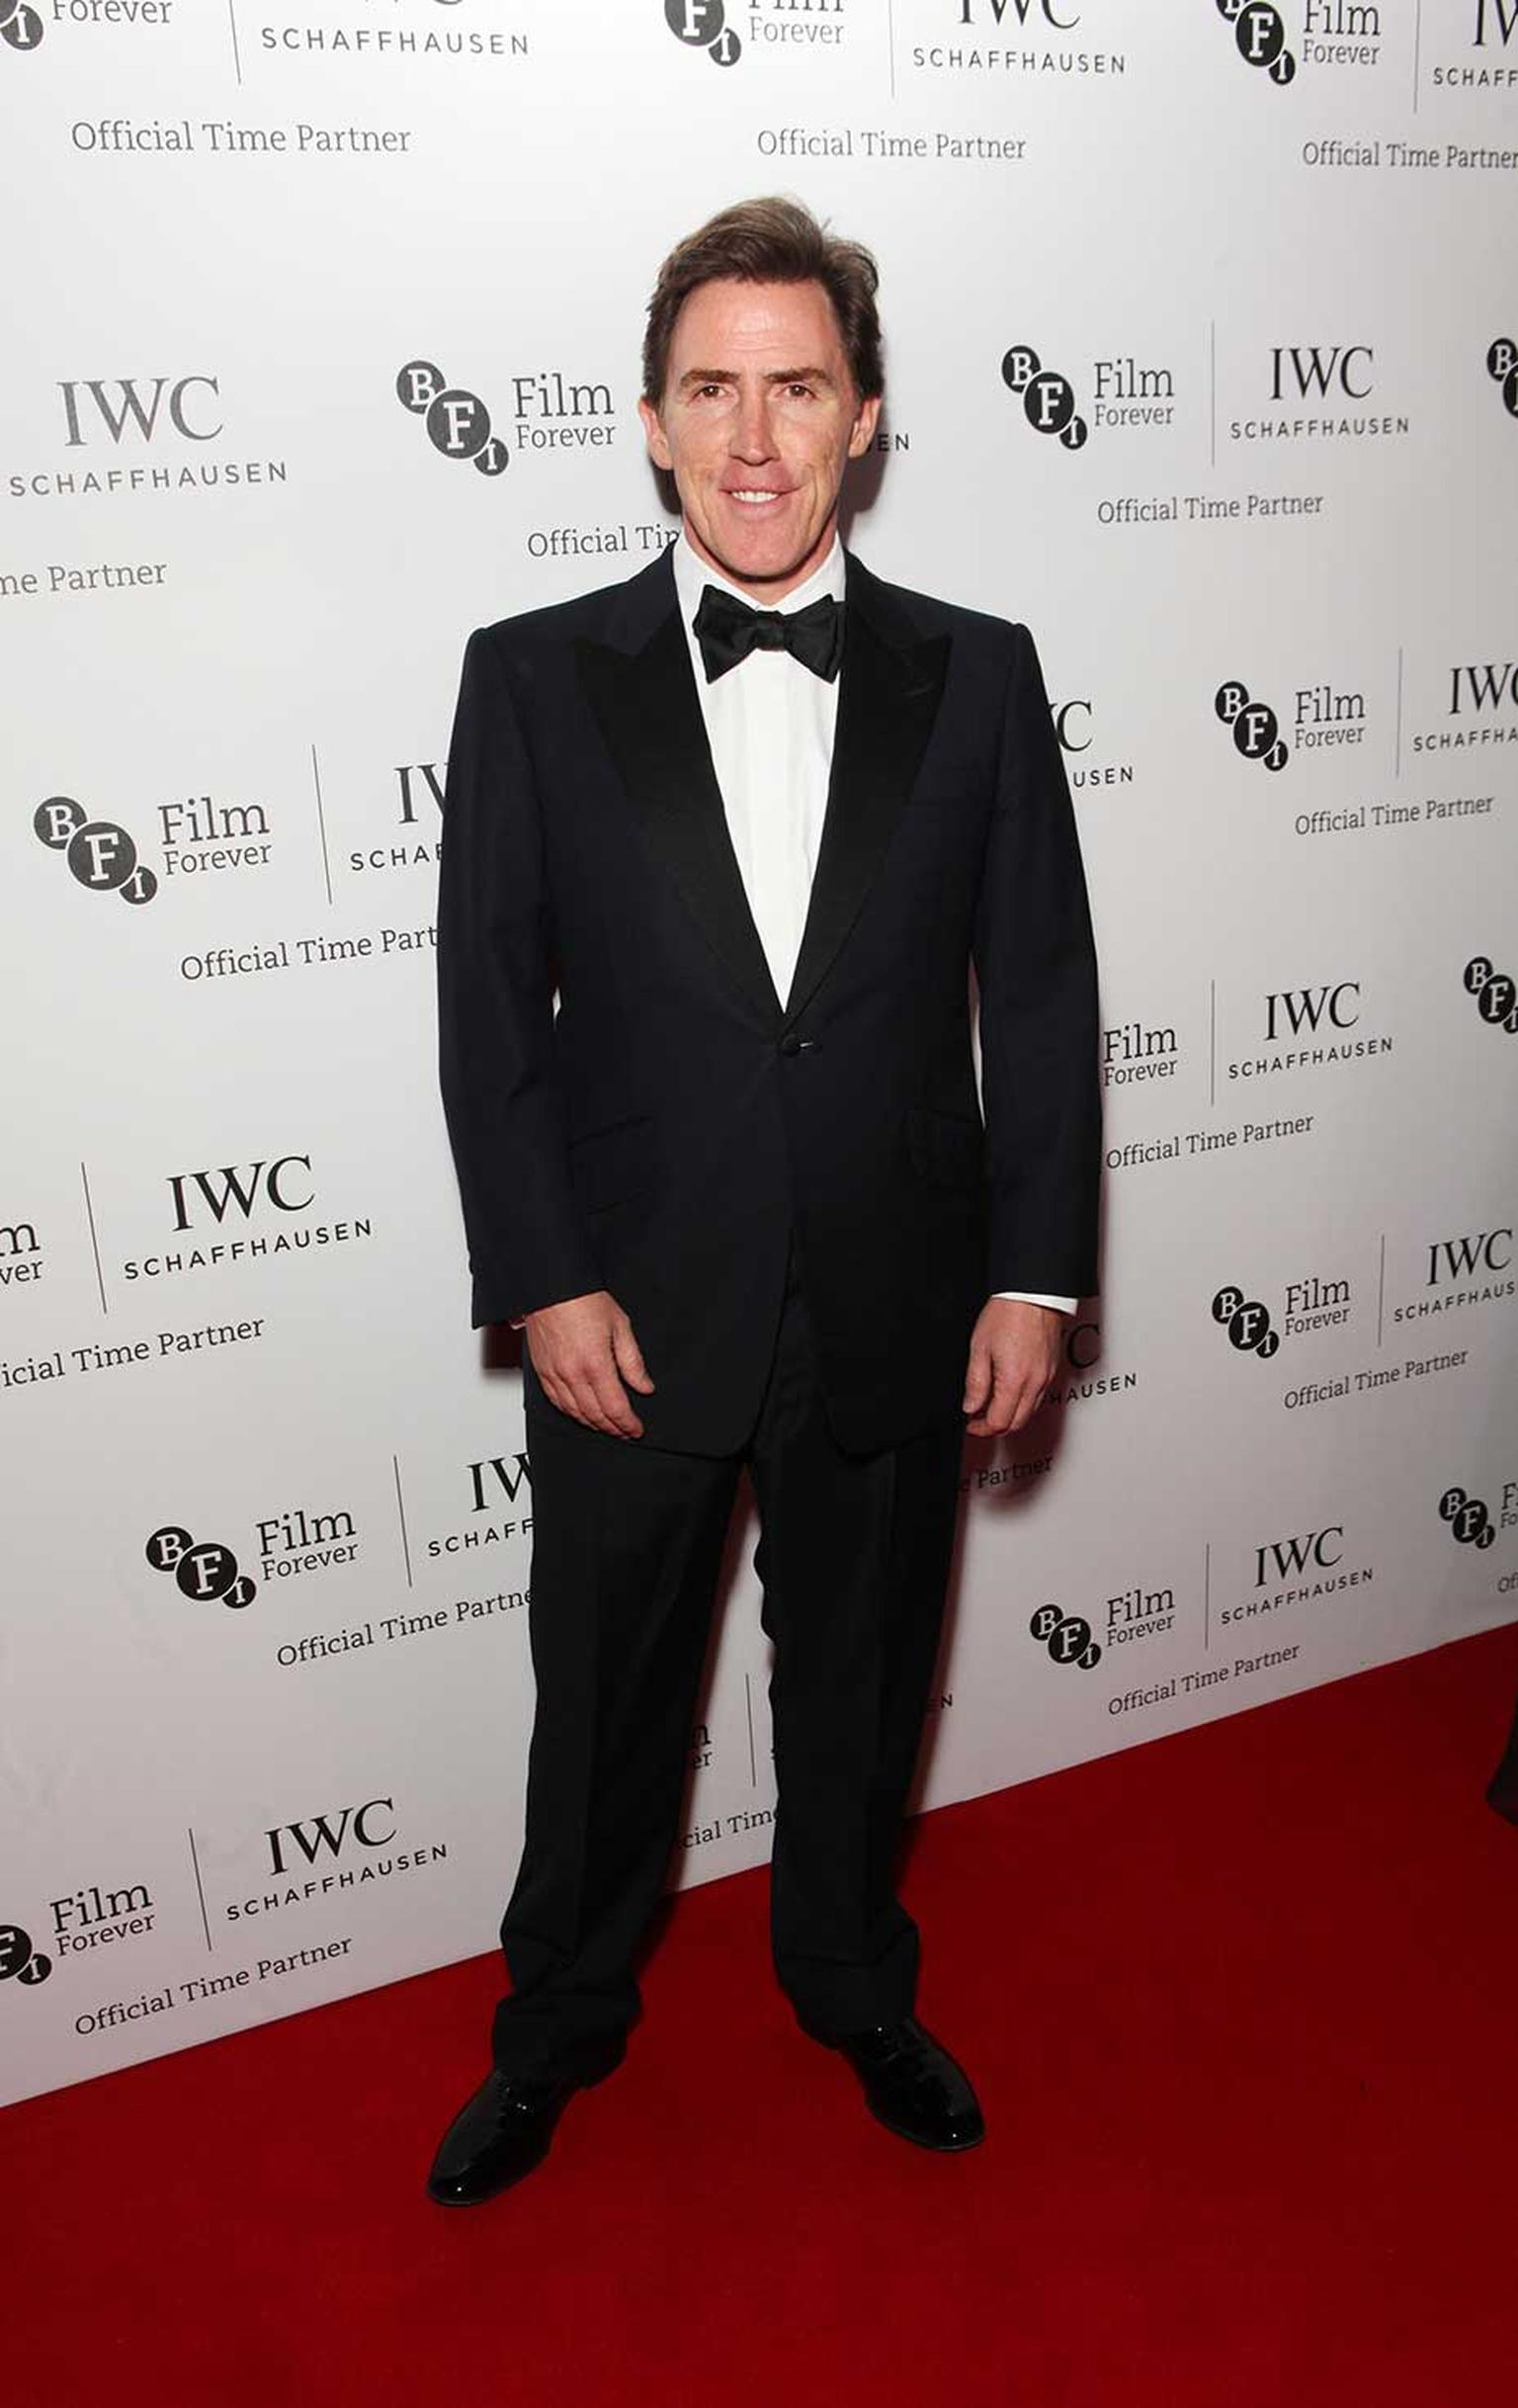 British comedian Rob Brydon, who sang and joked throughout the IWC Gala Dinner, led the entertainment. Image by: IWC/David M. Benett/Getty Images